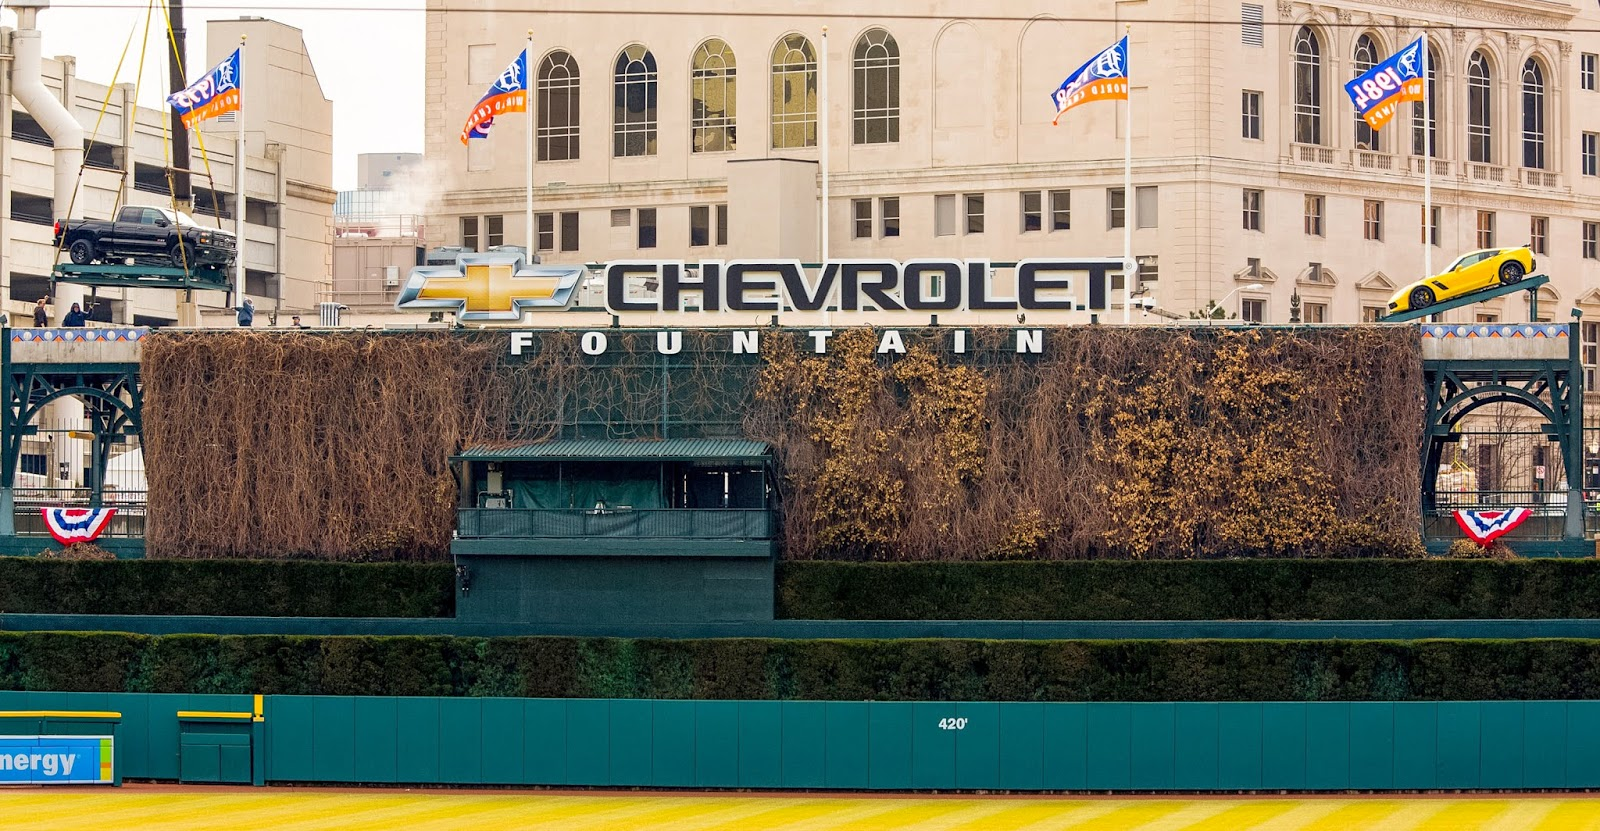 New Chevrolet Cars Parked Atop Comerica Park's Chevrolet Fountain